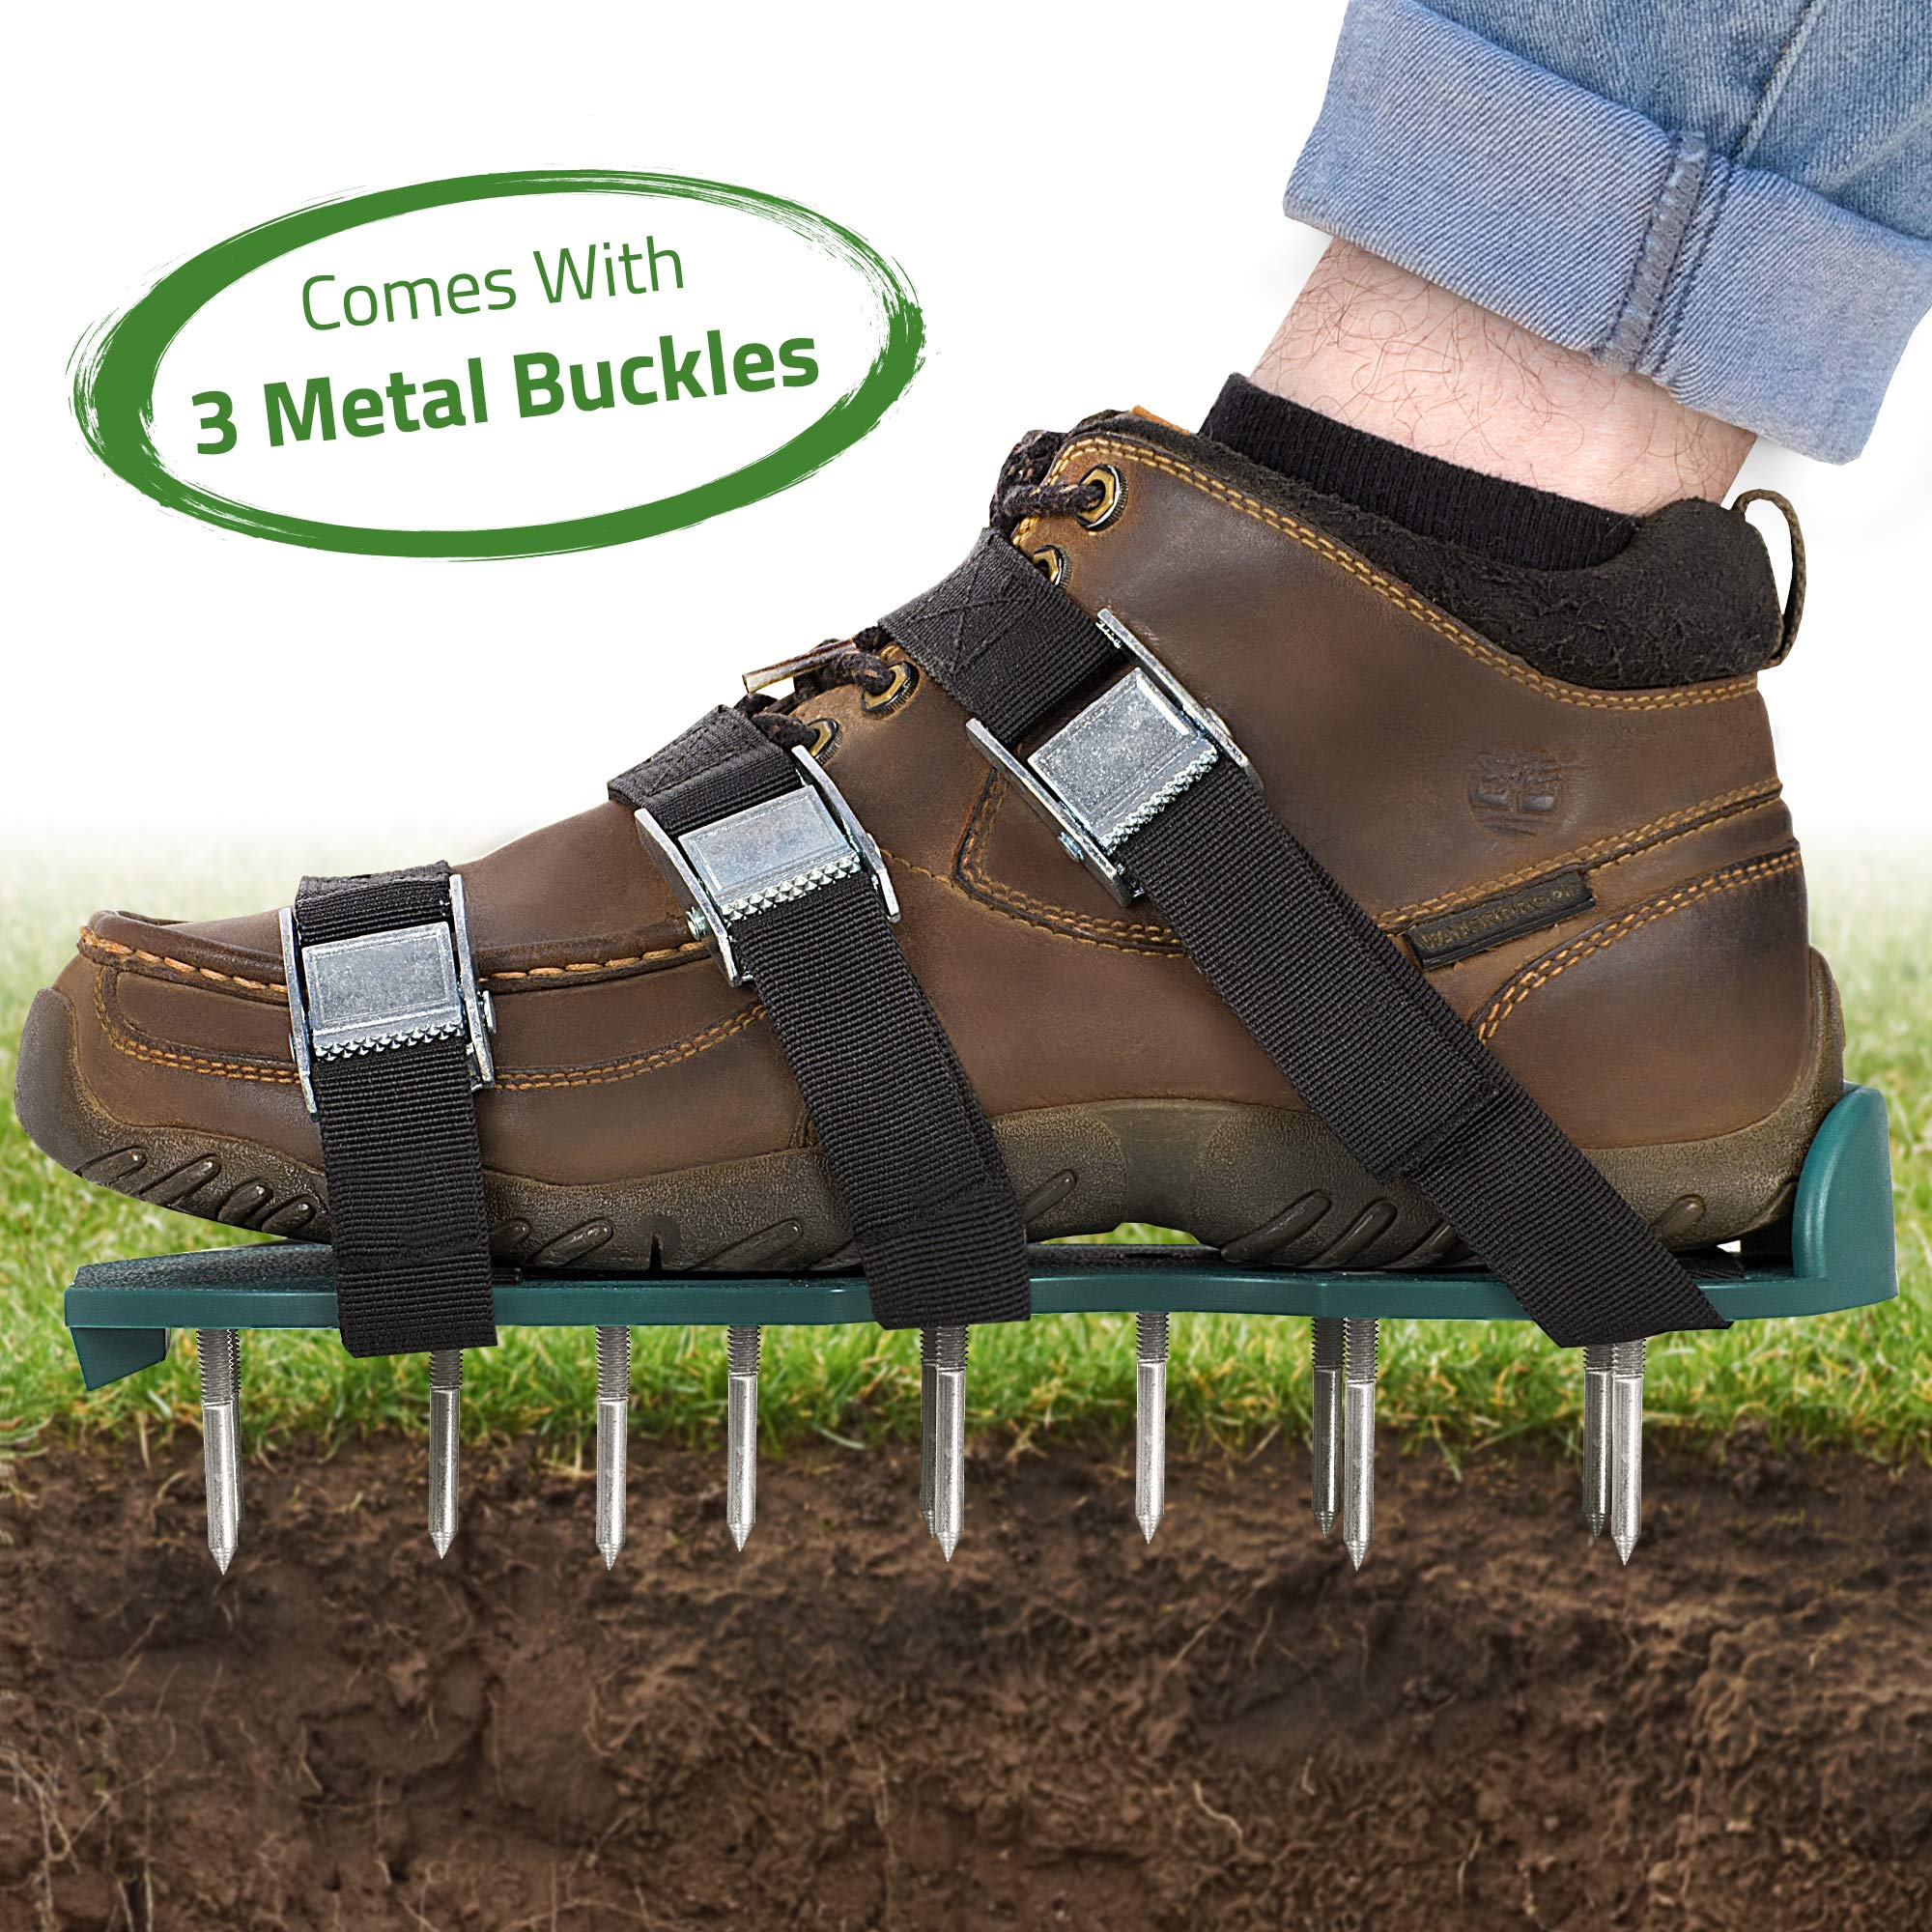 Abco Tech Lawn Aerator Shoes - for Effectively Aerating Lawn Soil - 3 Adjustable Straps and Heavy Duty Metal Buckles - One Size Fits All - Easy Use for a Healthier Yard and Garden by Abco Tech